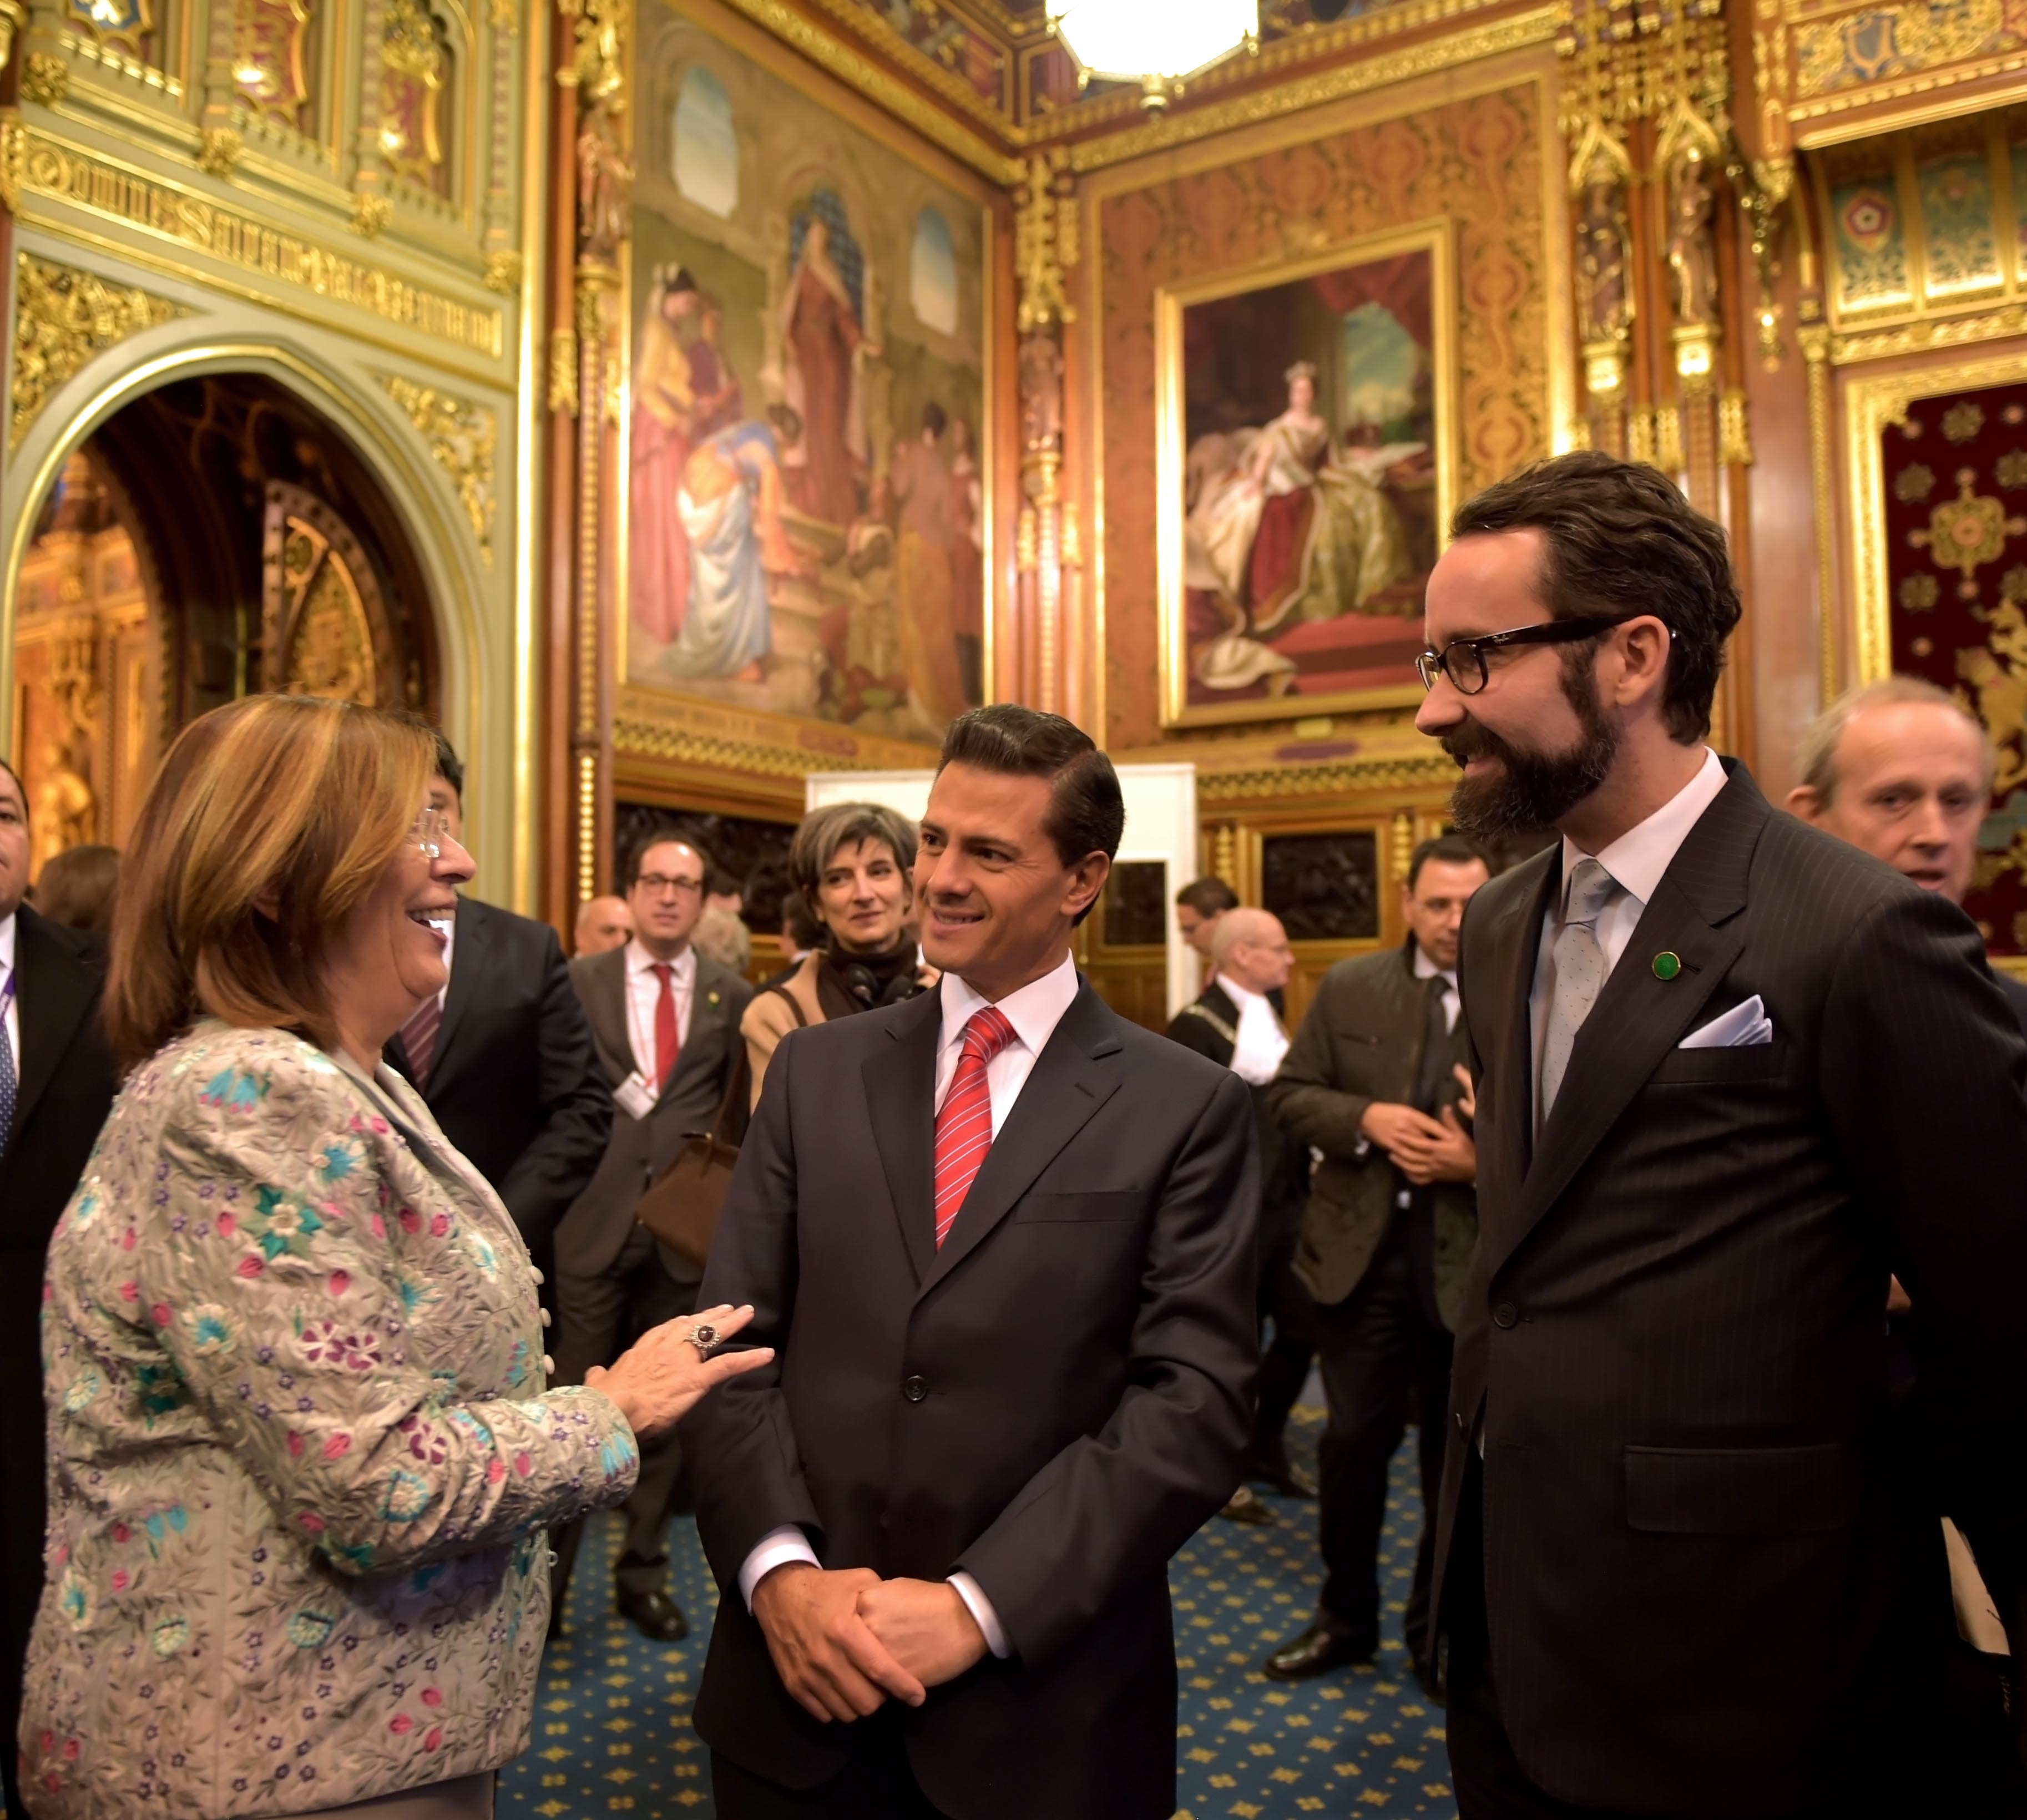 Intervencin del lic enrique pea nieto presidente de los estados unidos mexicanos en la house of lords 16087776573 o